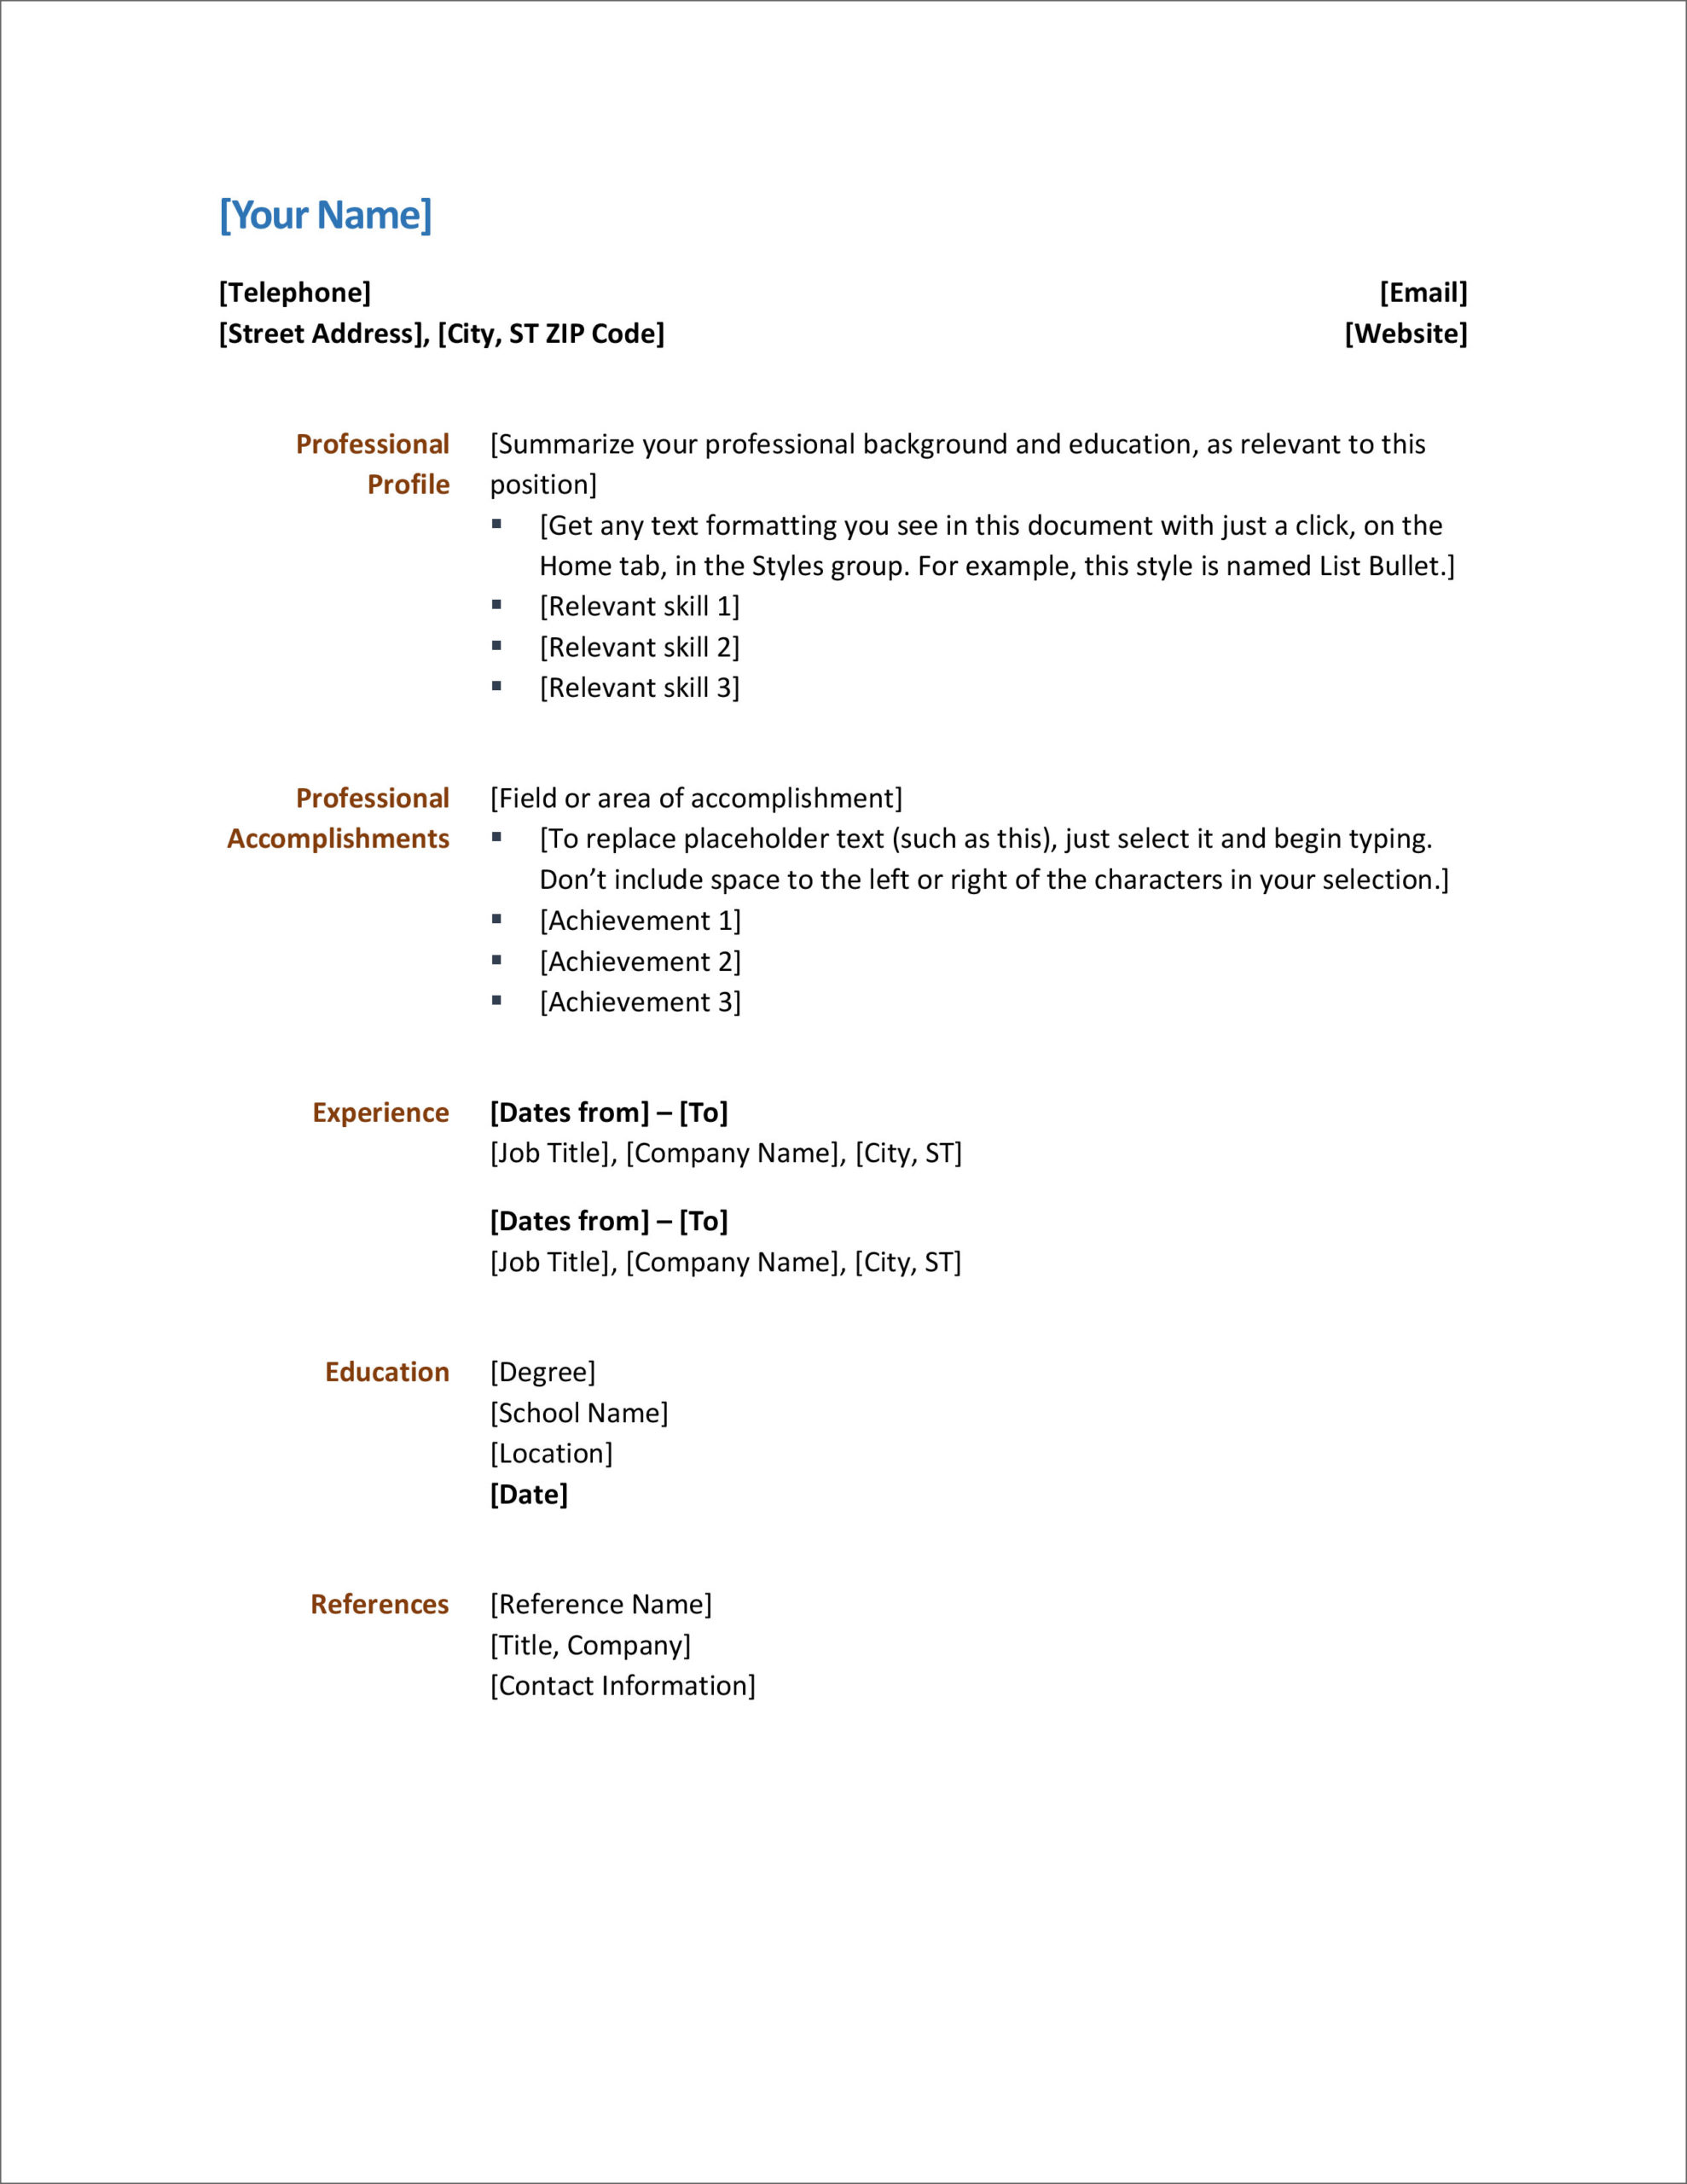 resume microsoft cv template form sample for new graduates another name foundation word Resume Another Word For Resume